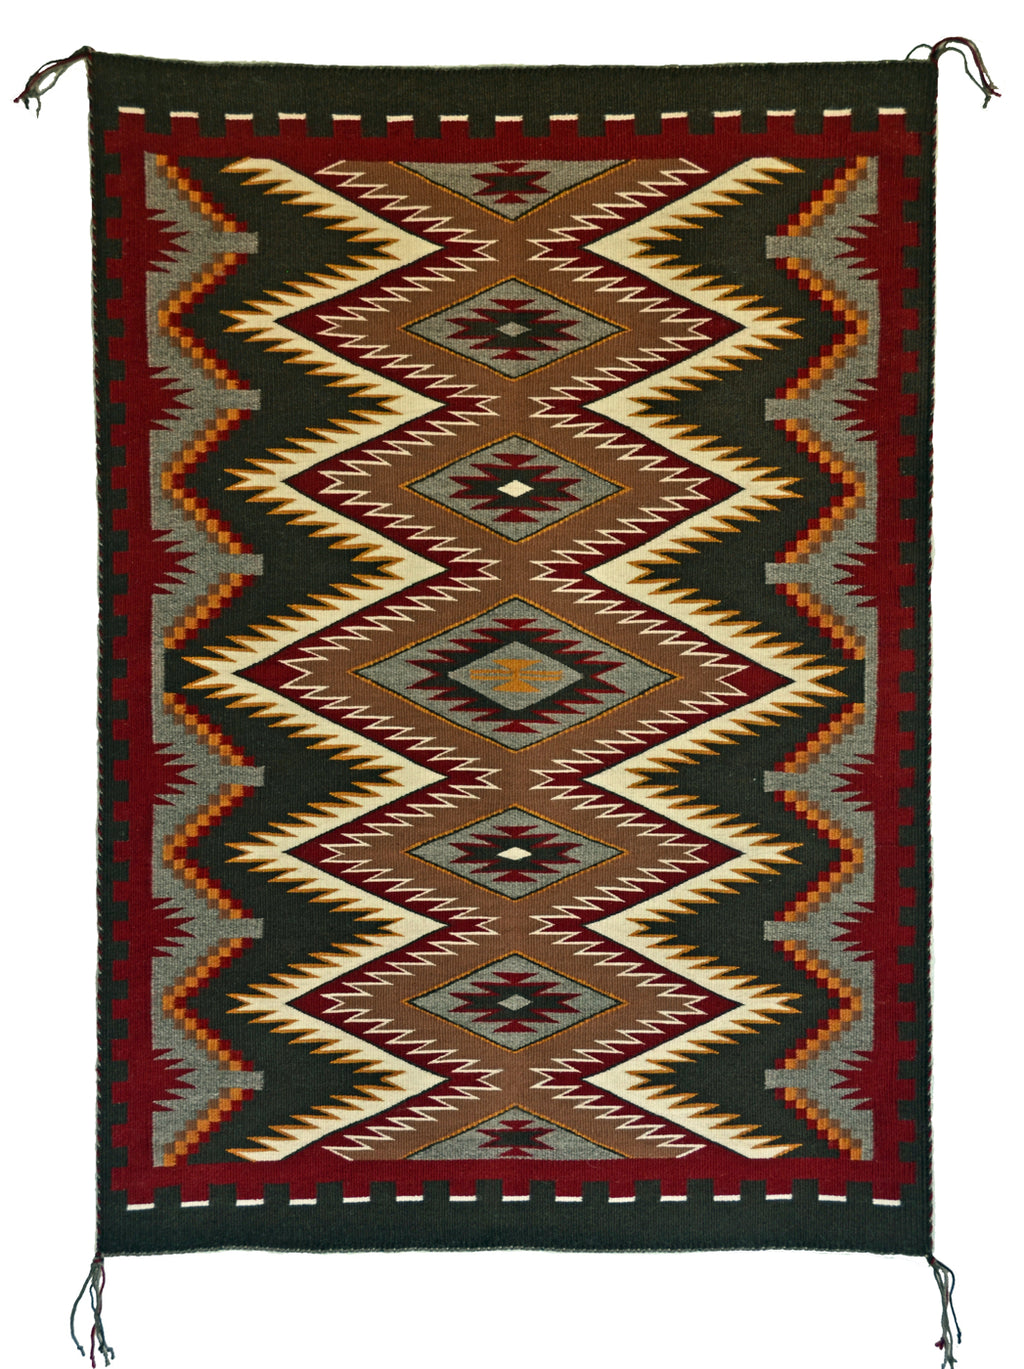 Red Mesa Navajo Rug for sale